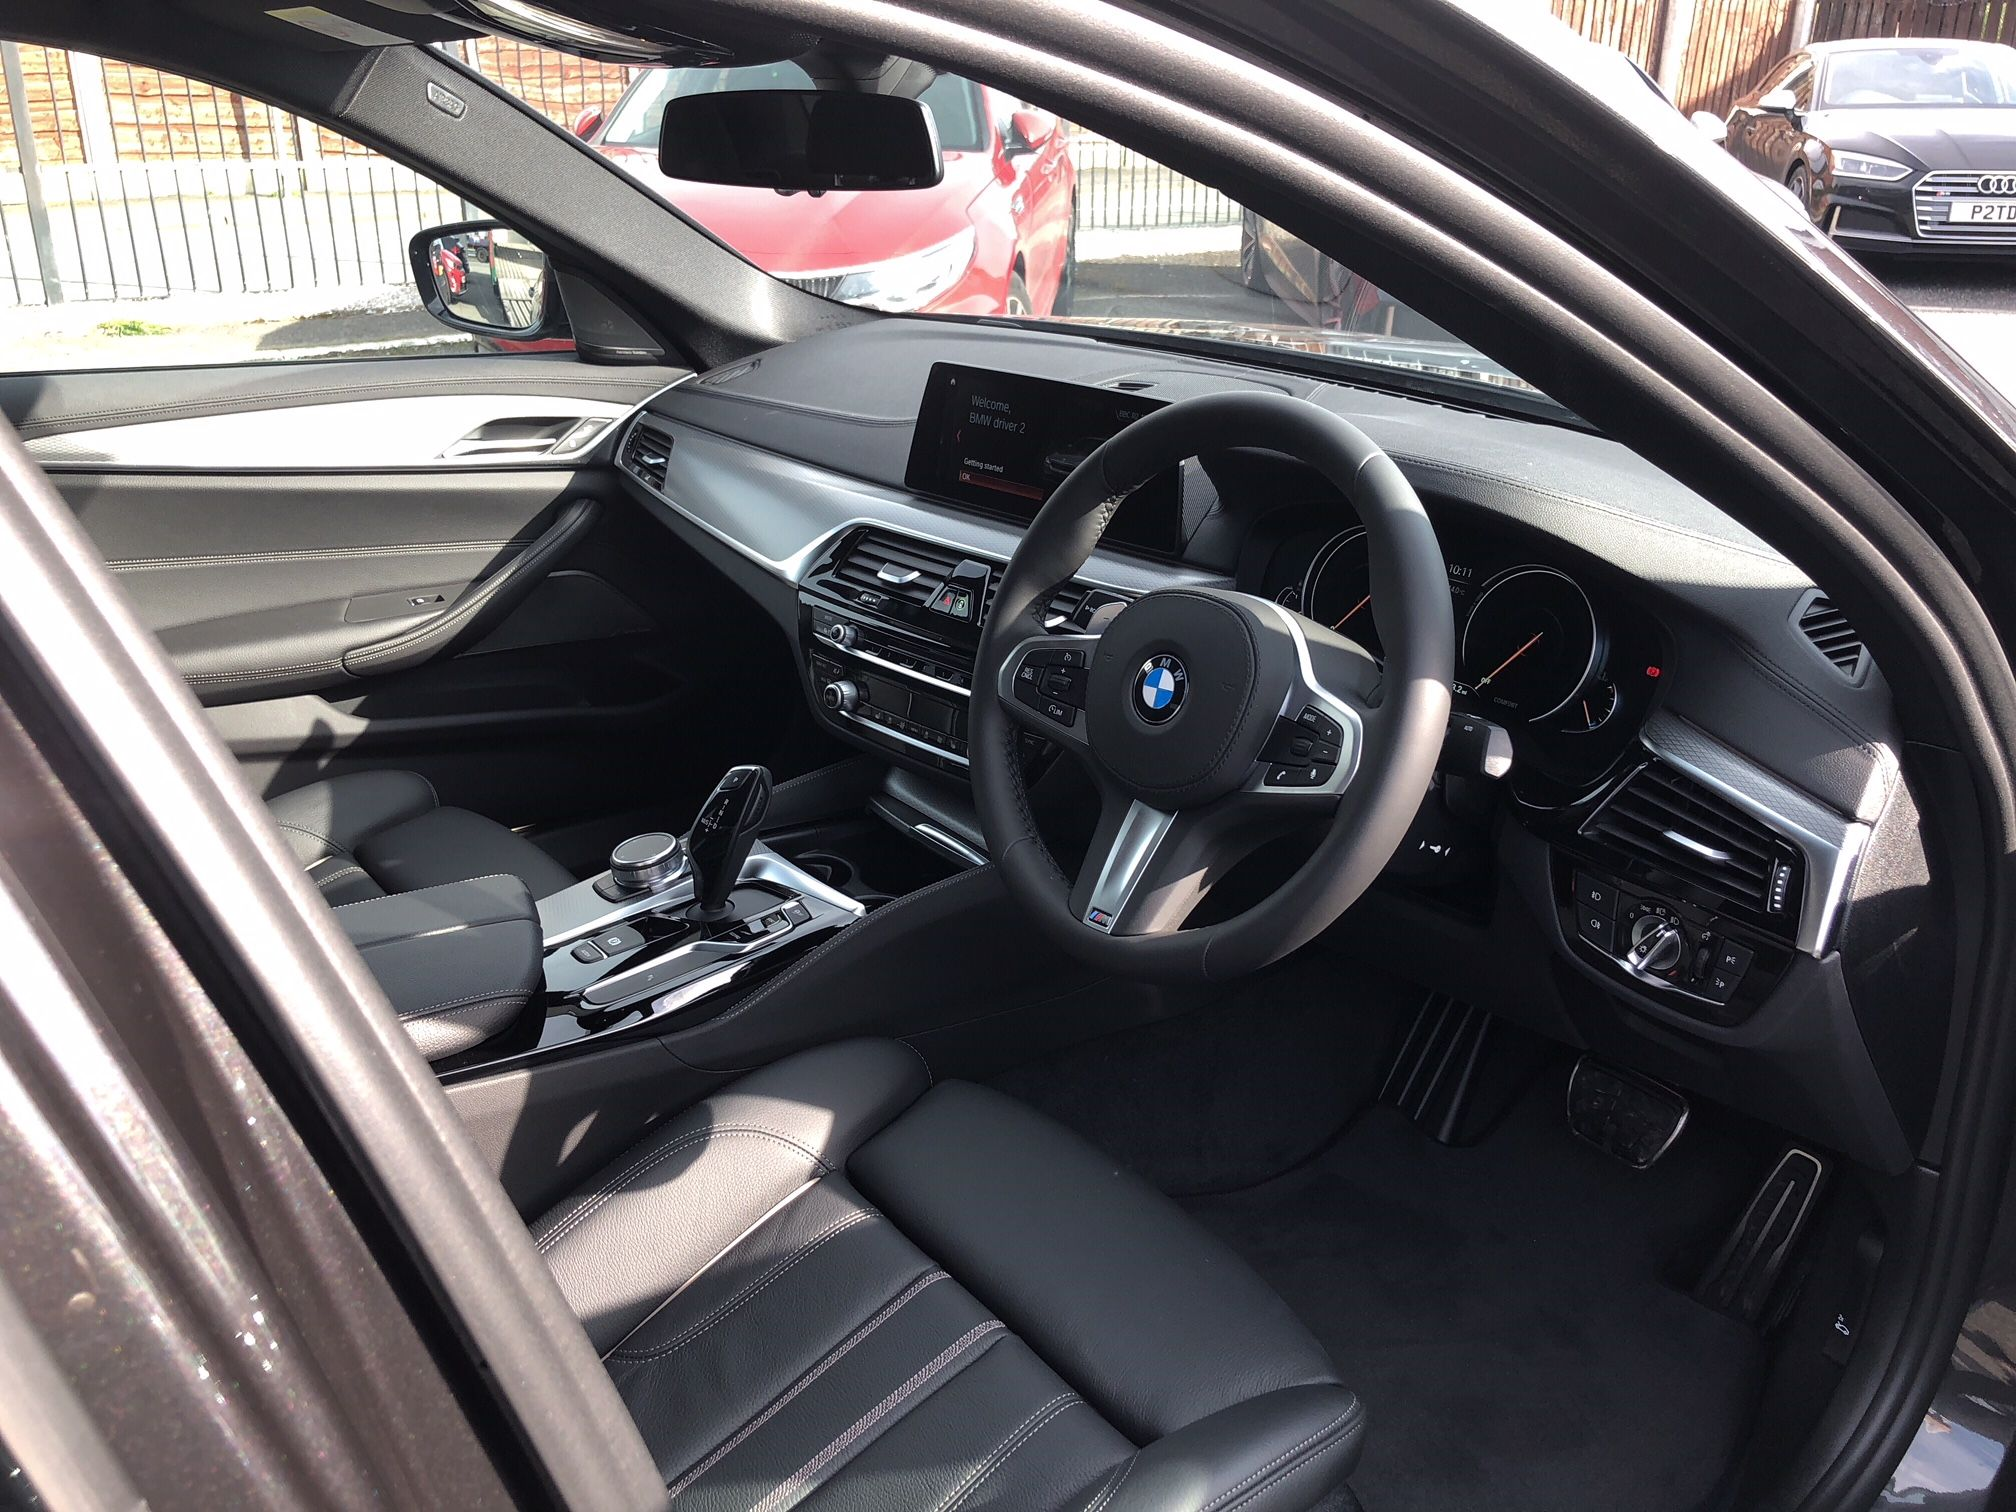 The Bmw 5 Series Diesel Saloon 520d M Sport 4dr Auto Cars